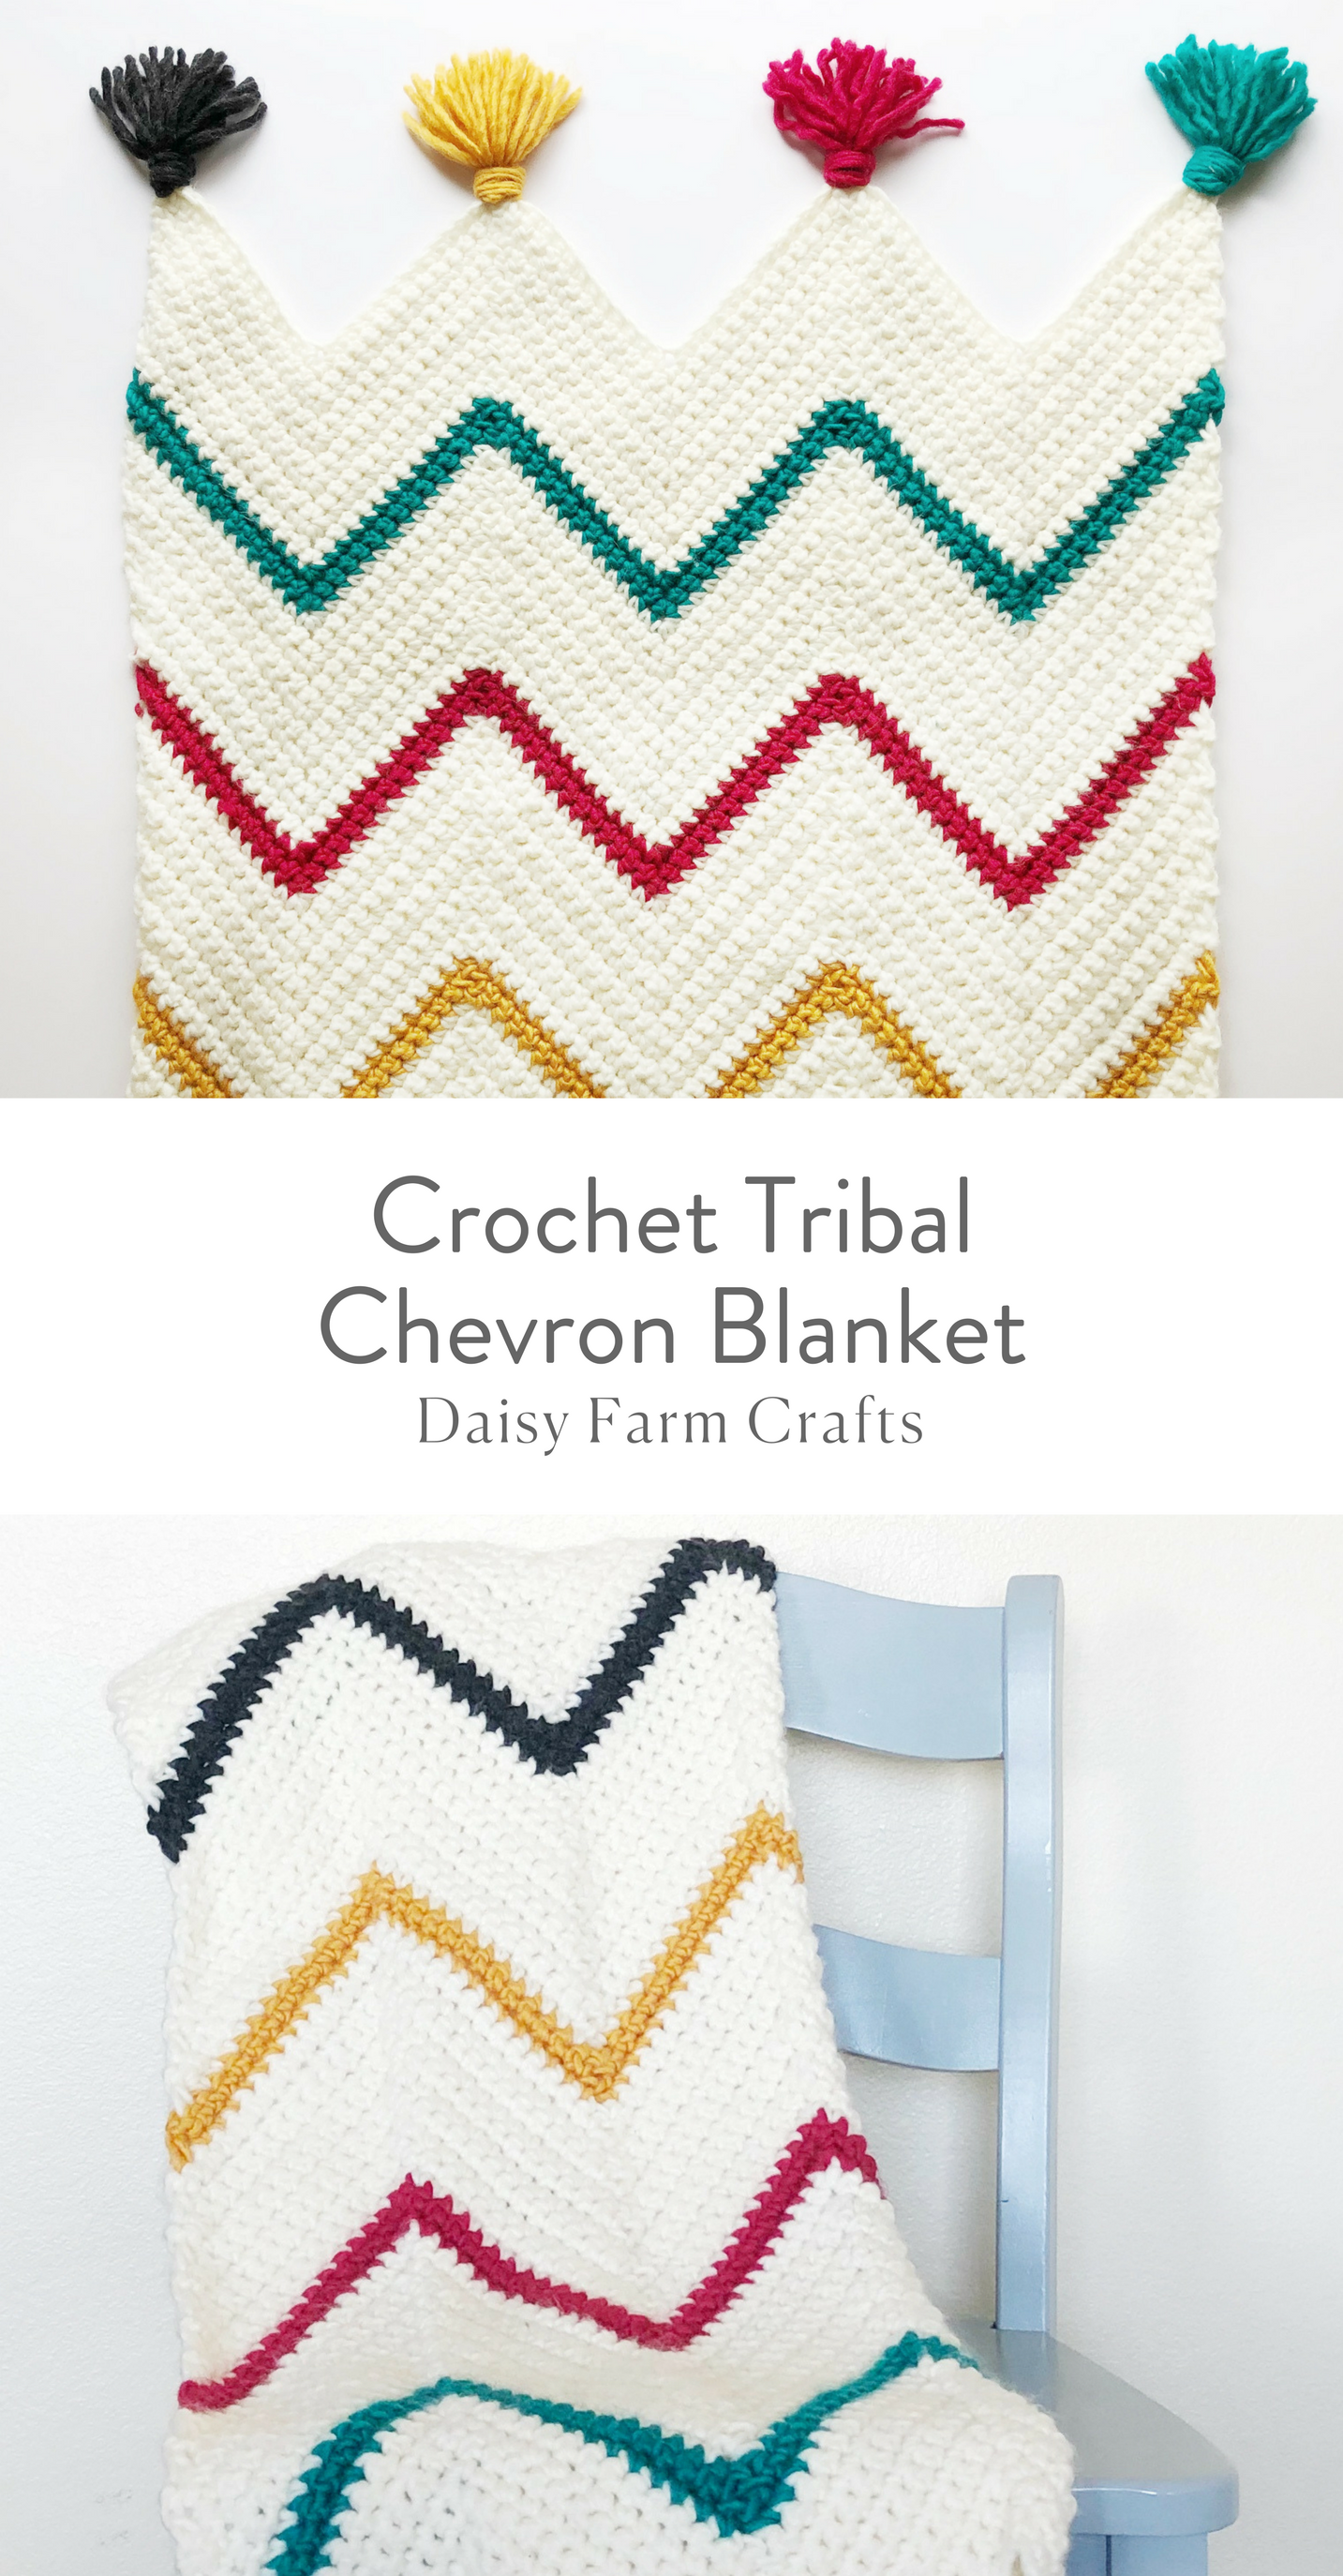 Free Pattern - Crochet Tribal Chevron Blanket | one stitch at a time ...